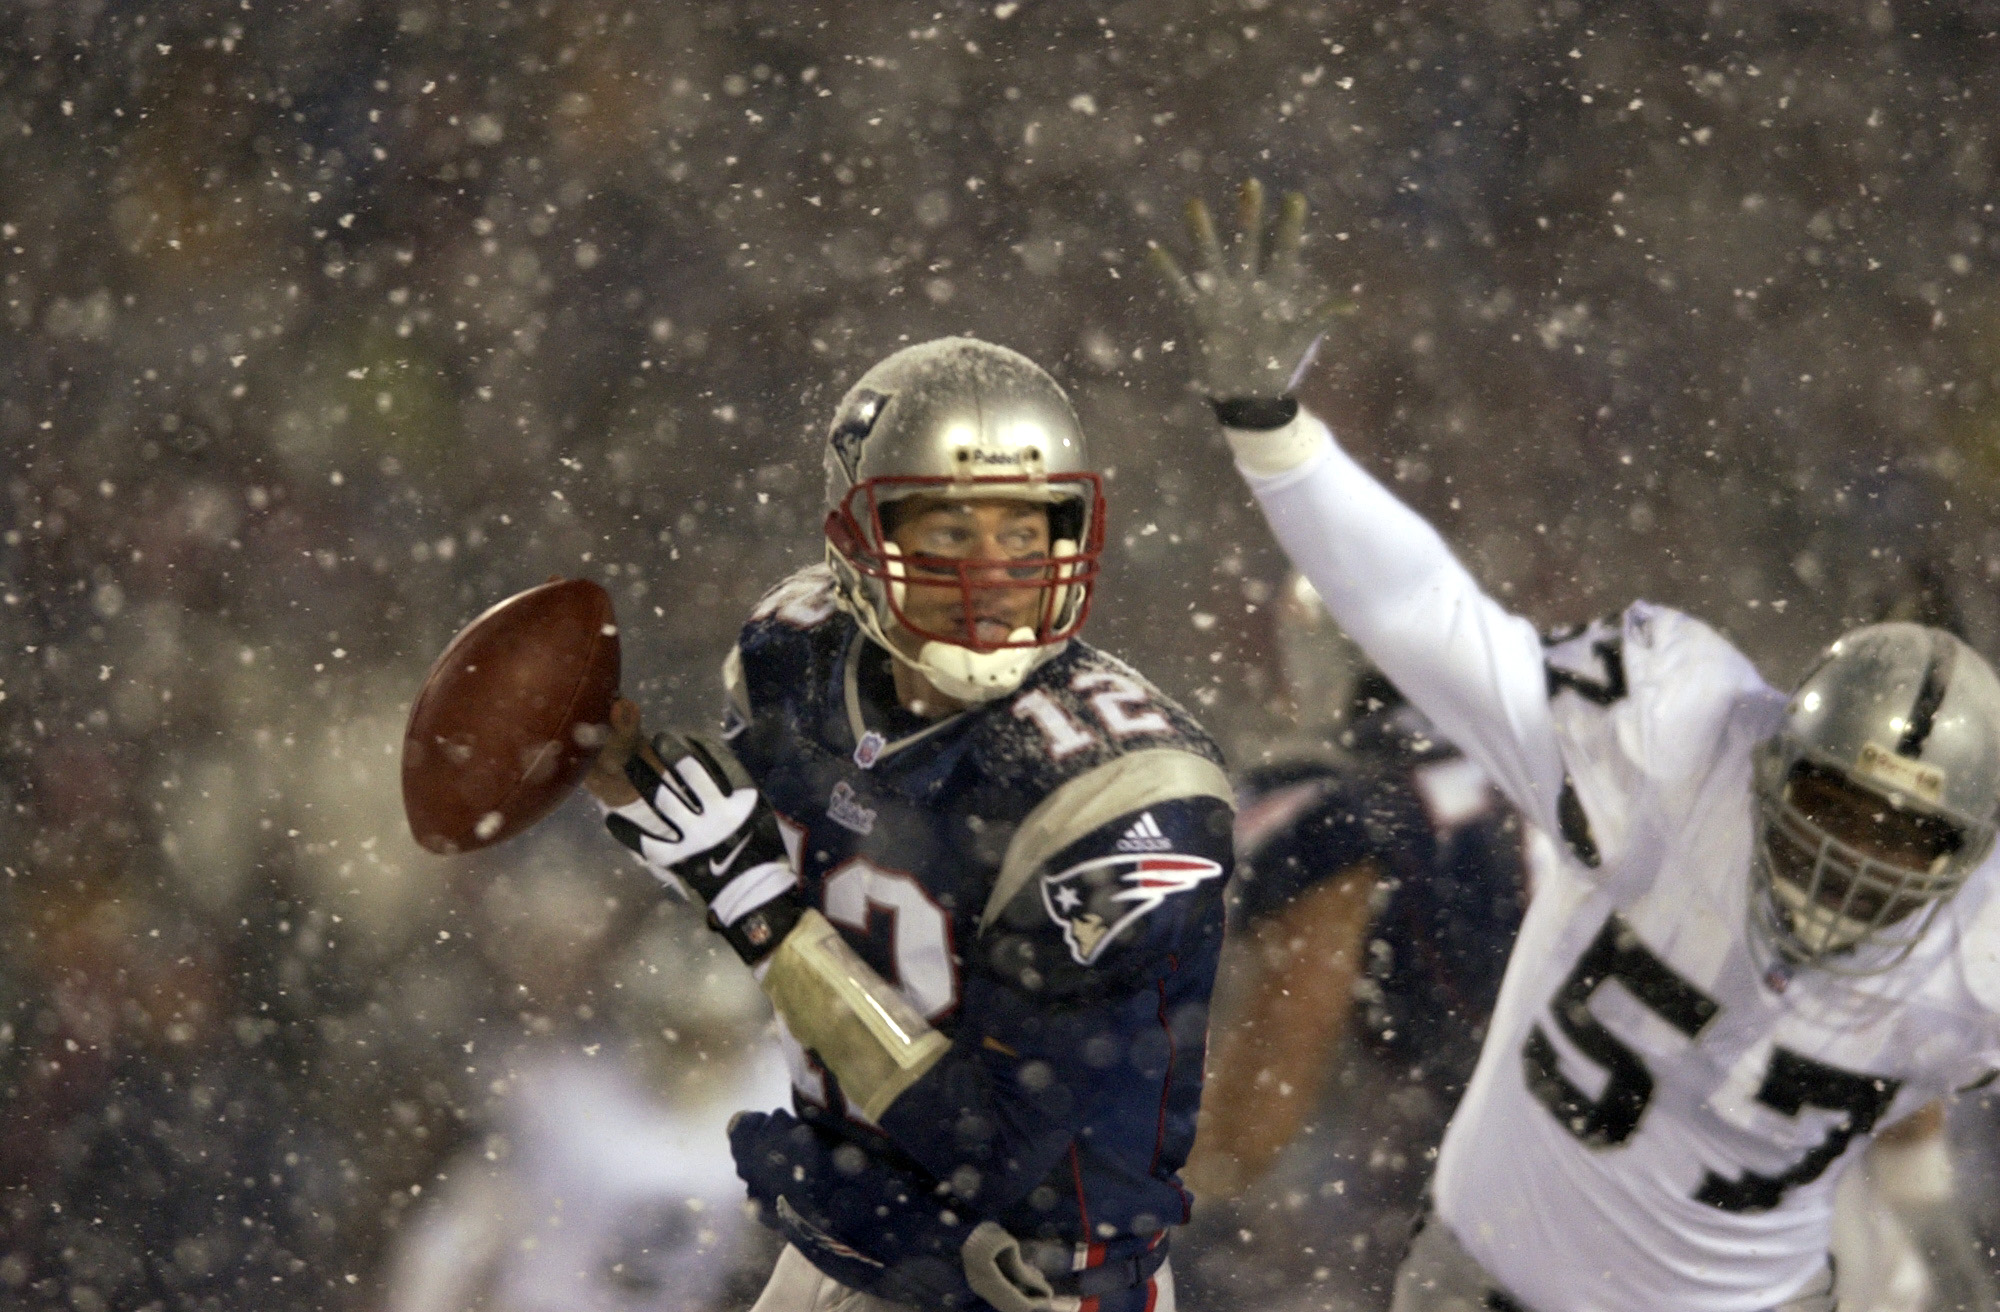 19 Jan 2002:  Quarterback Tom Brady #12 of the New England Patriots scrambles against the defense of Rod Coleman #57 of the Oakland Raiders during the AFC playoff game at Foxboro Stadium in Foxboro, Massachuesetts. The Patriots came from behind to win 16-